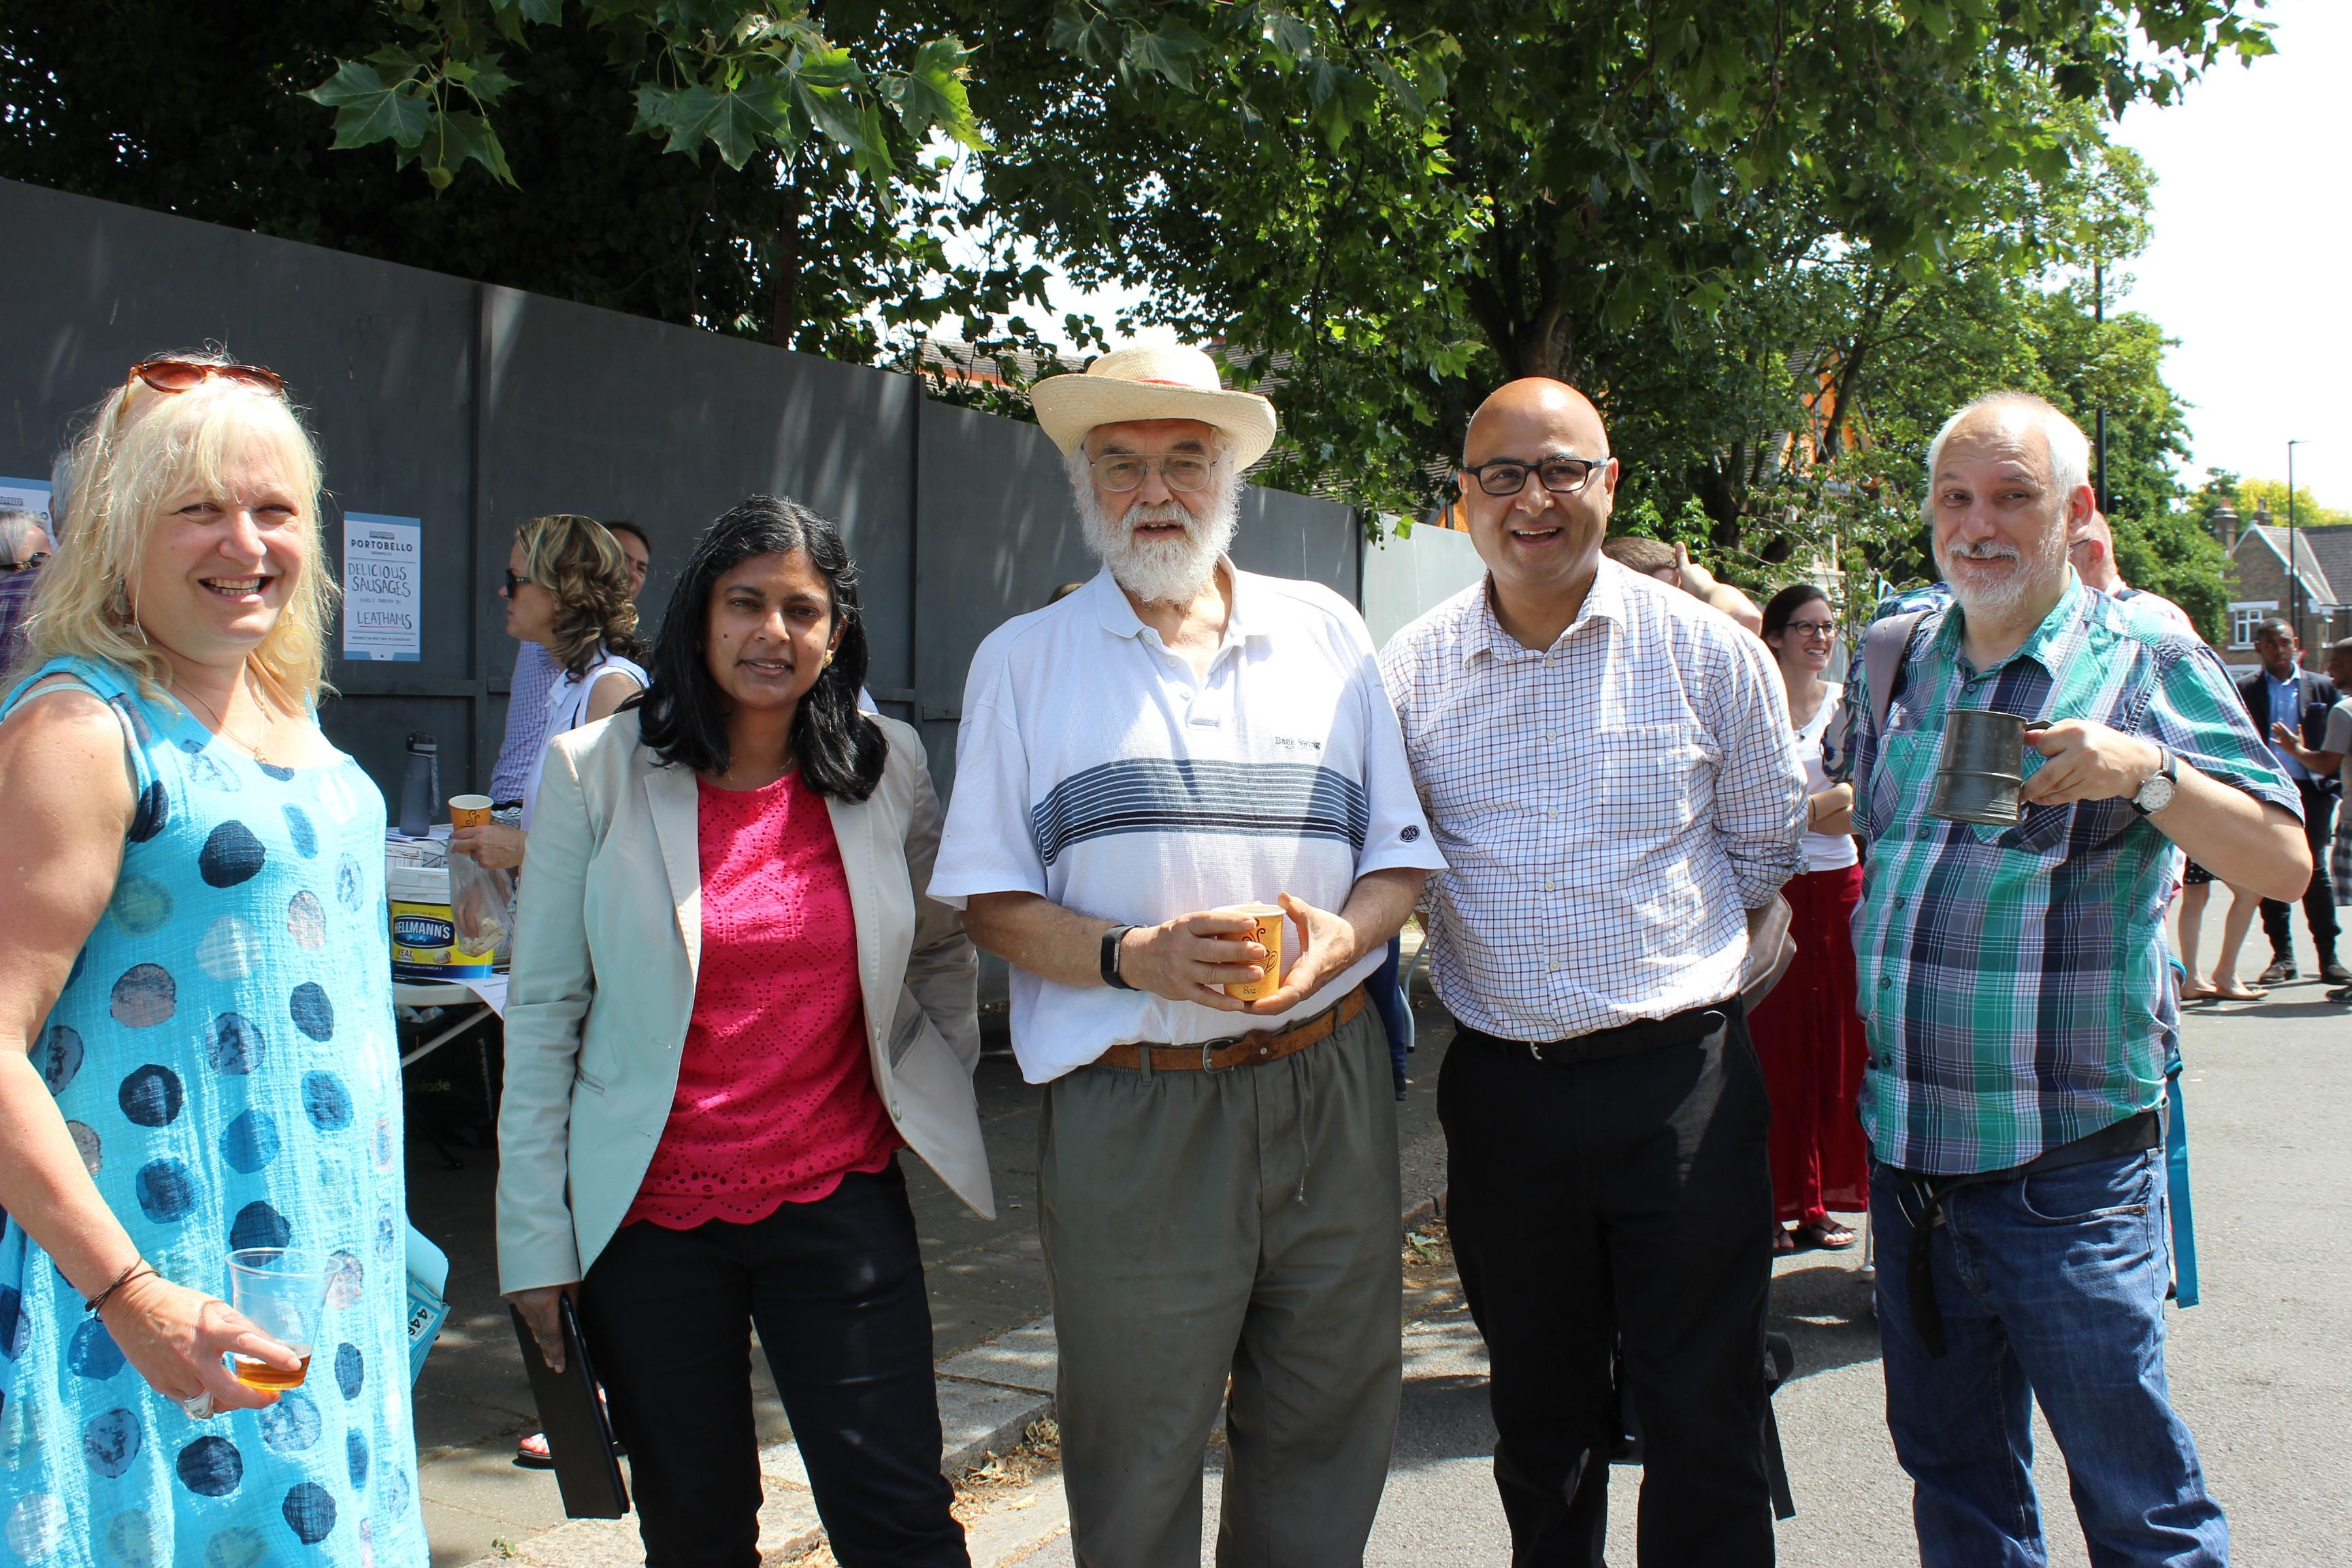 MP Rupa Huq, Councillor Hitesh Taylor and East Acton residents